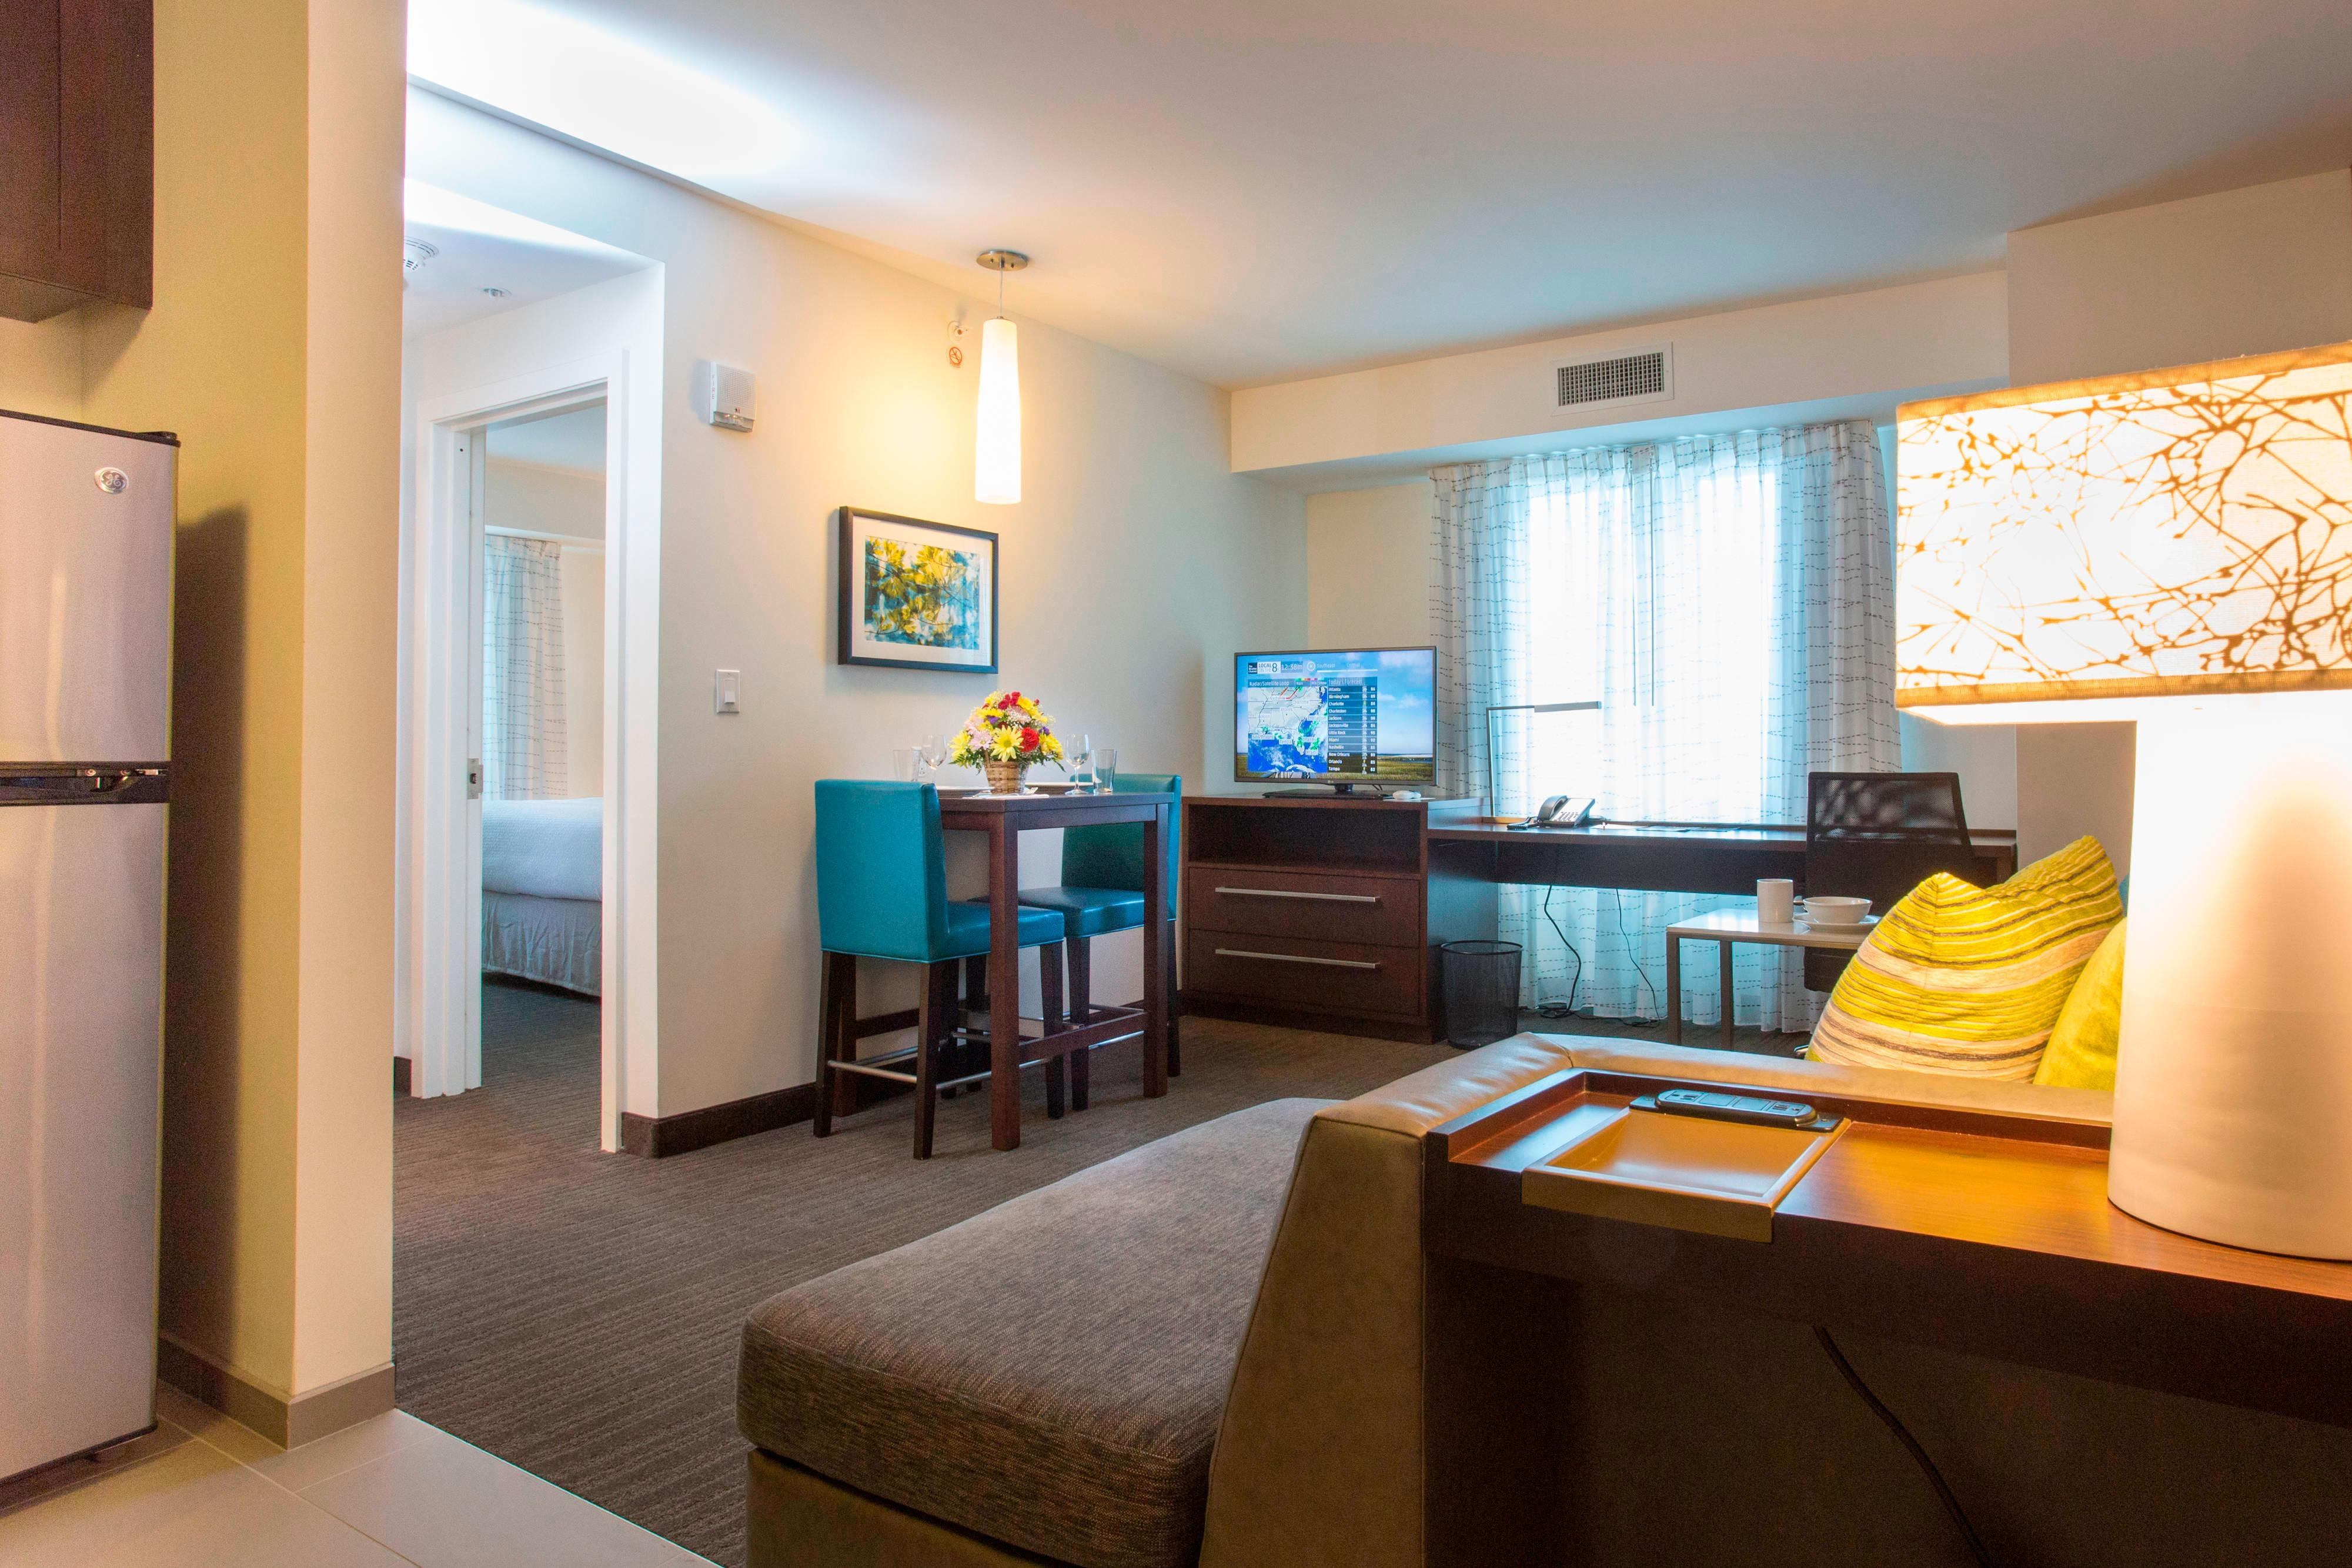 Hotel suite in Bronx, NY